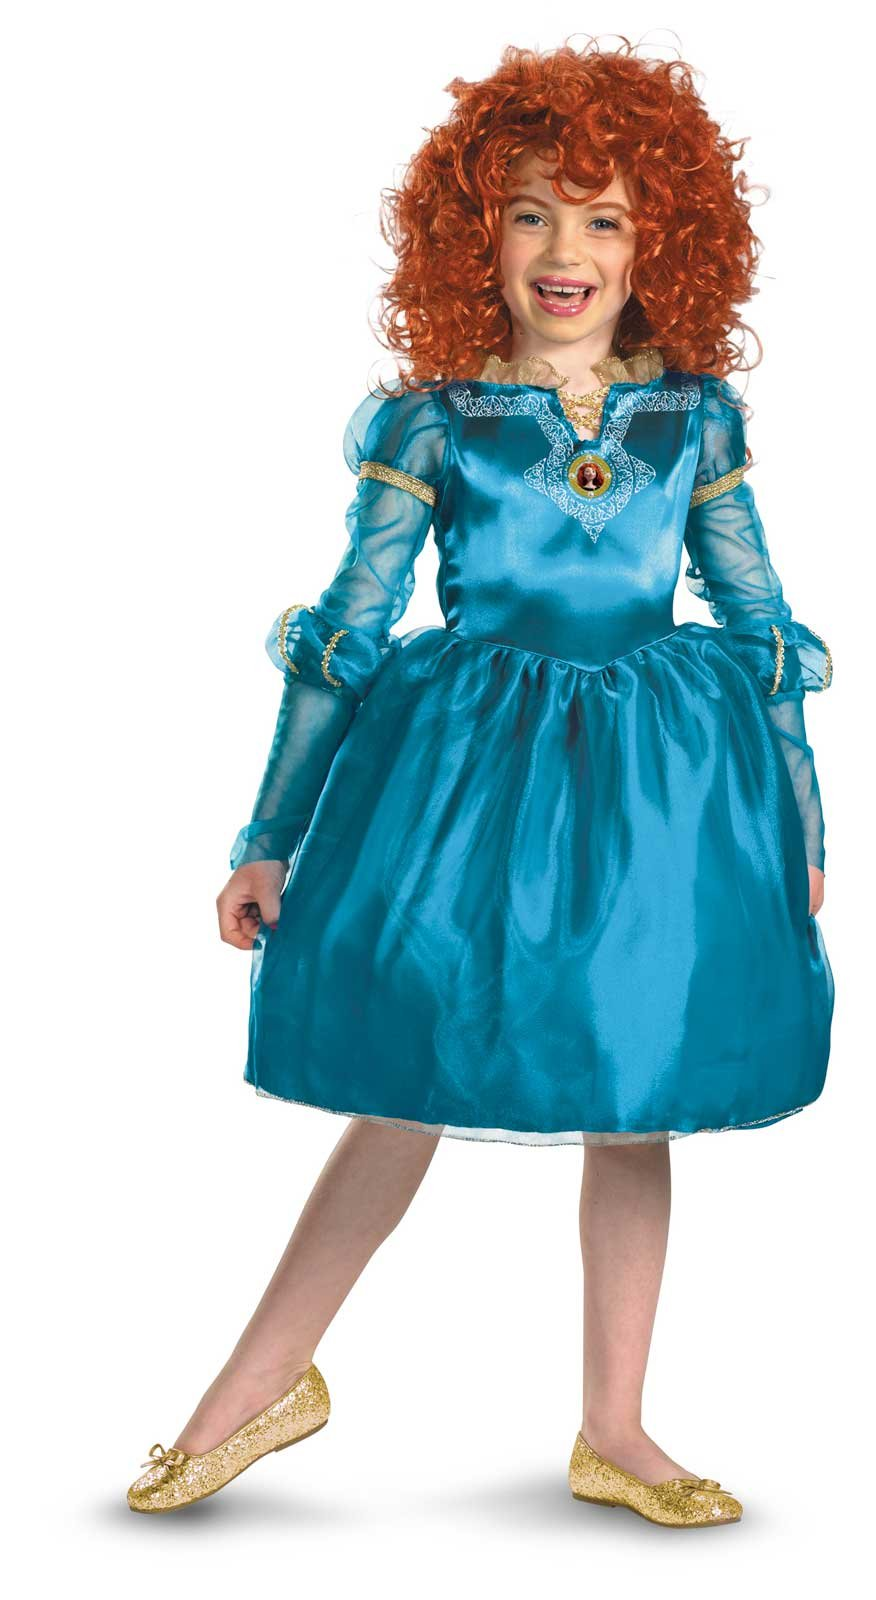 Disney Brave Merida Hero Toddler Costume